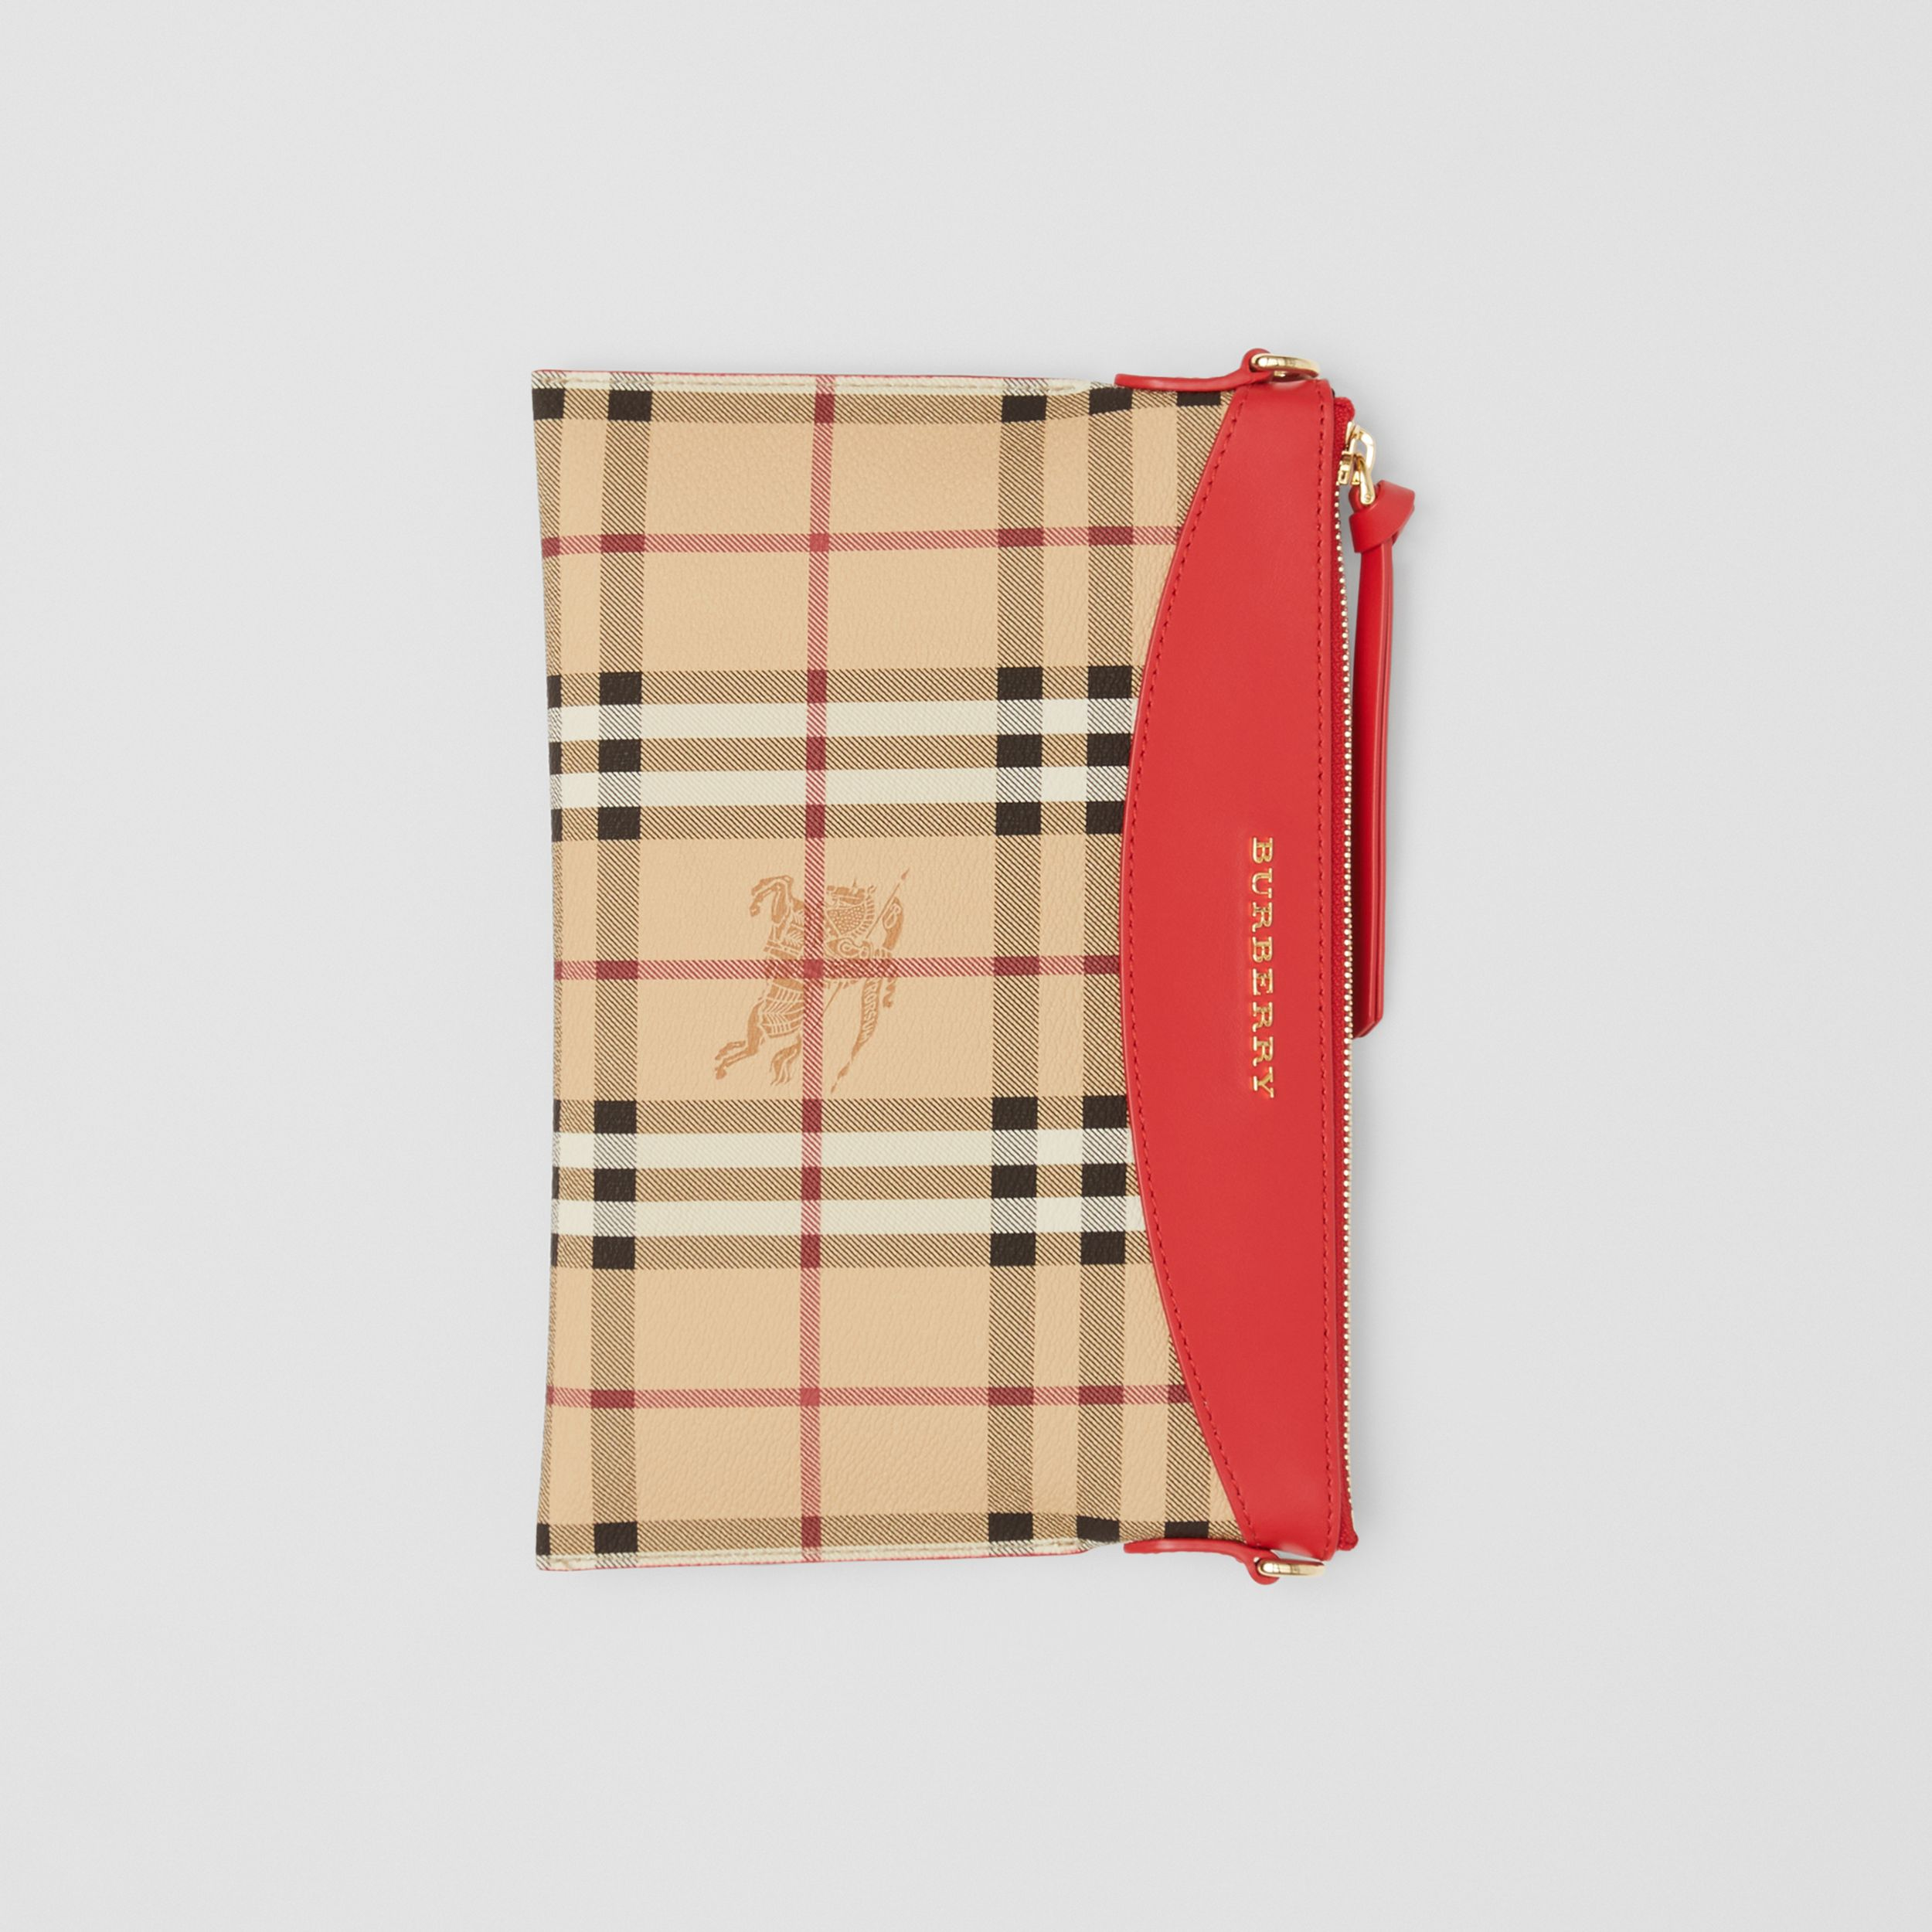 Haymarket Check E-canvas and Leather Clutch in Bright Red - Women | Burberry - 3